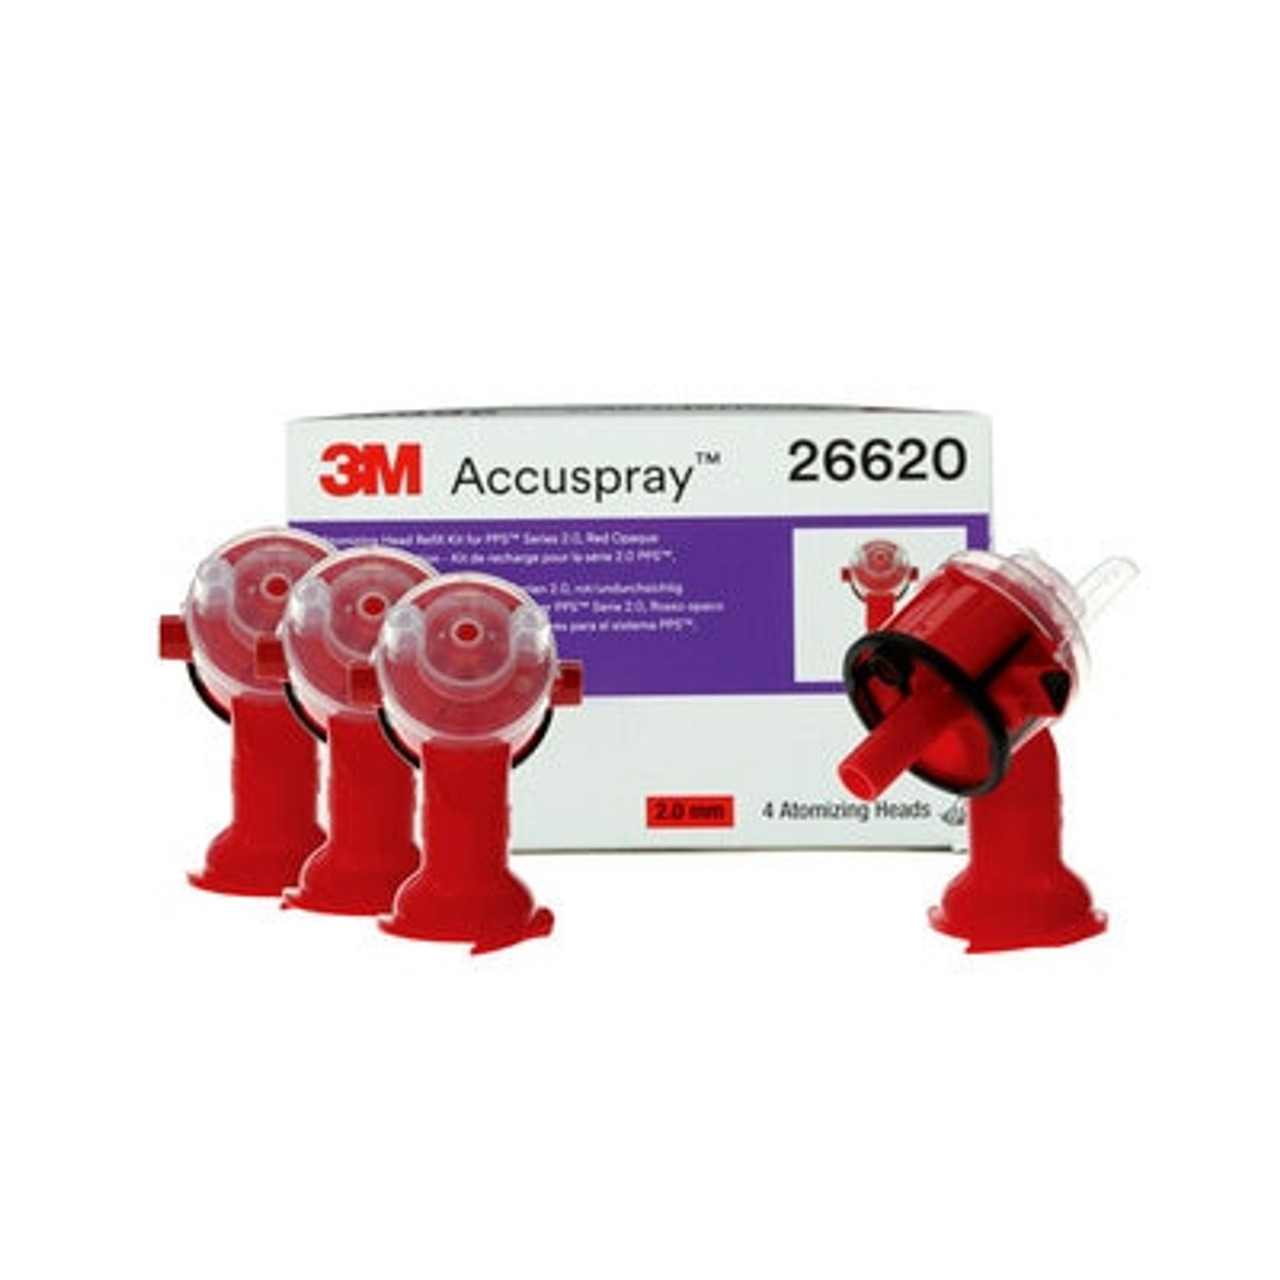 3M™ Accuspray™ Atomizing Head Refill Pack for 3M™ PPS™ Series 2.0, 26620, Red, 2.0 mm